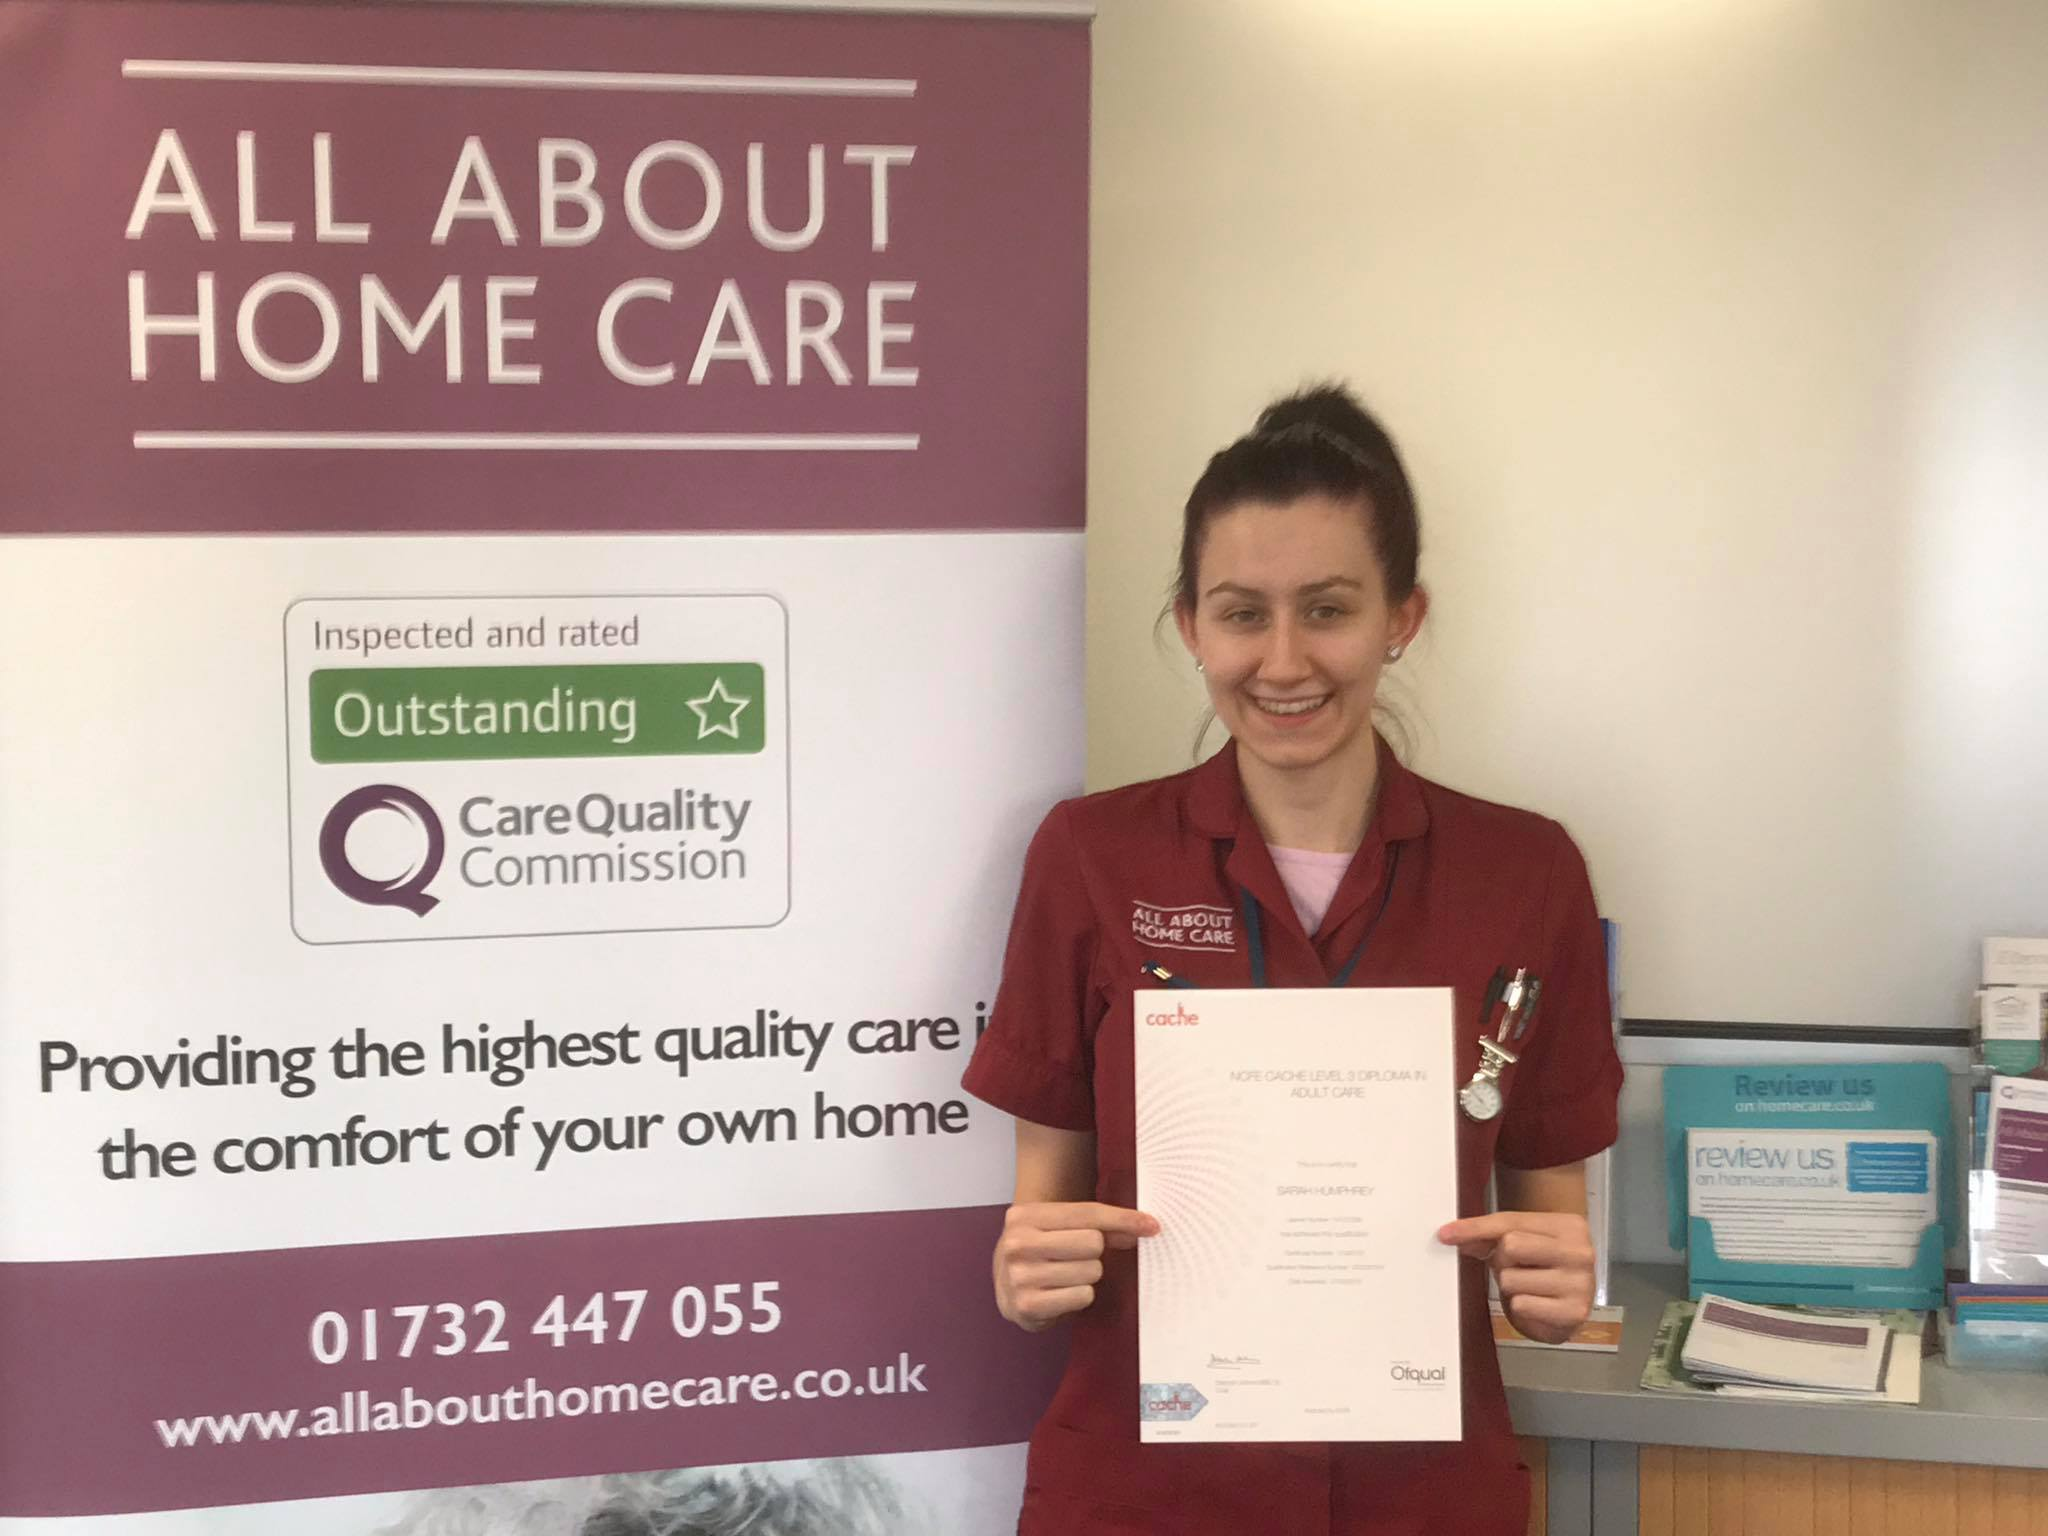 All About Home Care